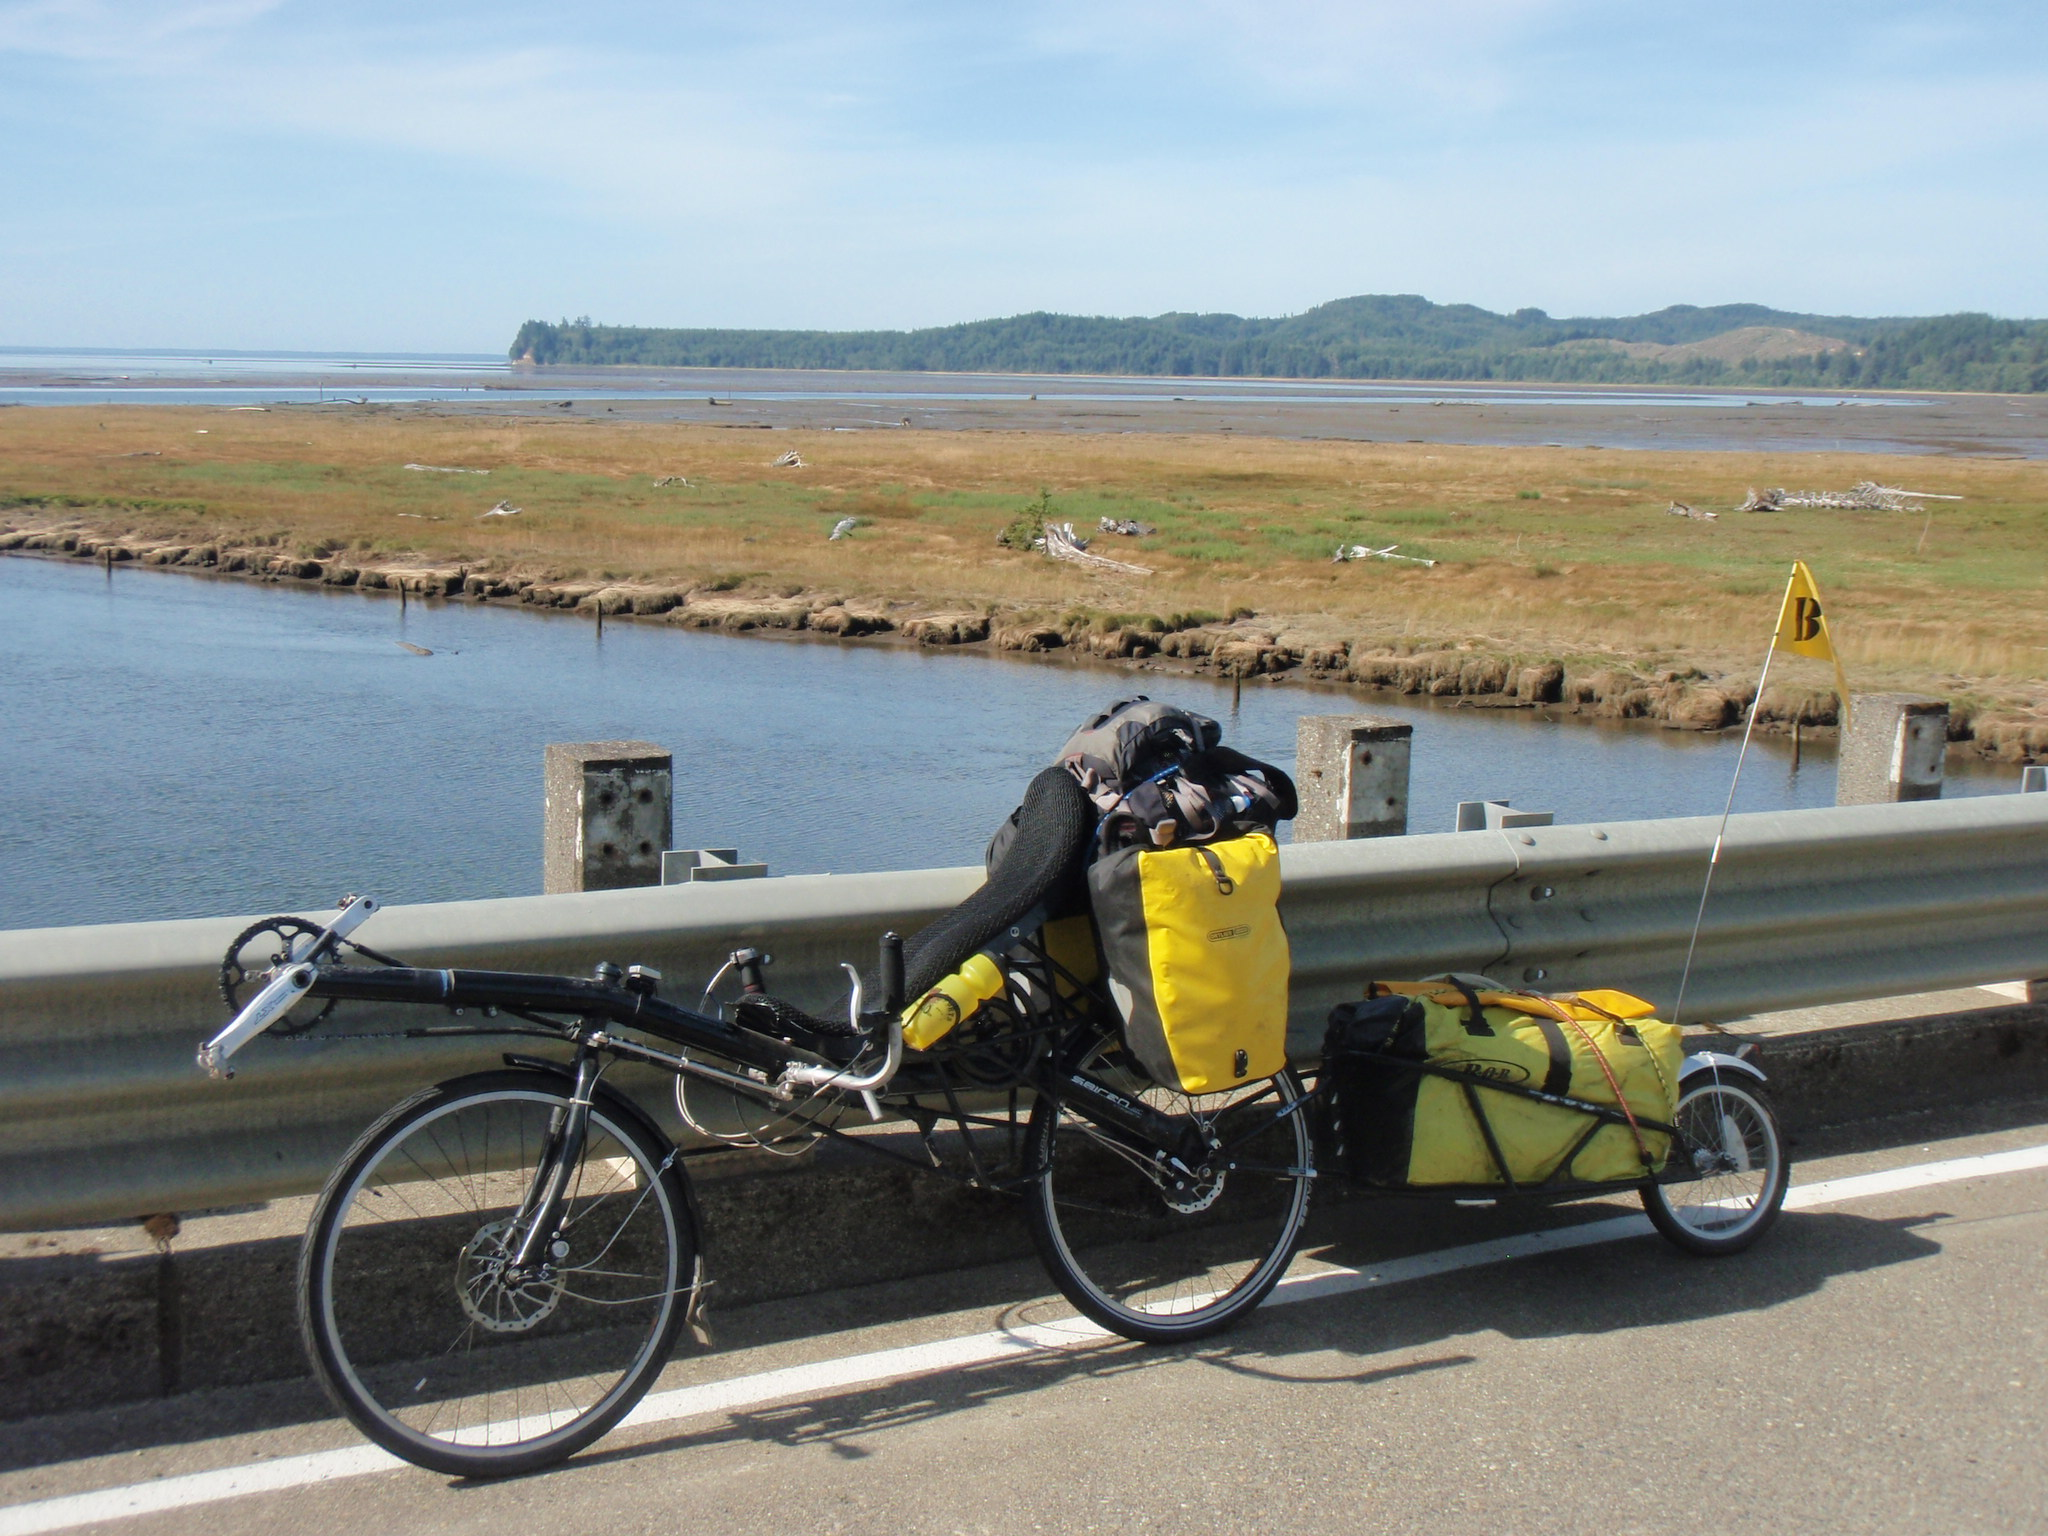 Circum-navigating one of the many bays which turn into mud flats at low tide